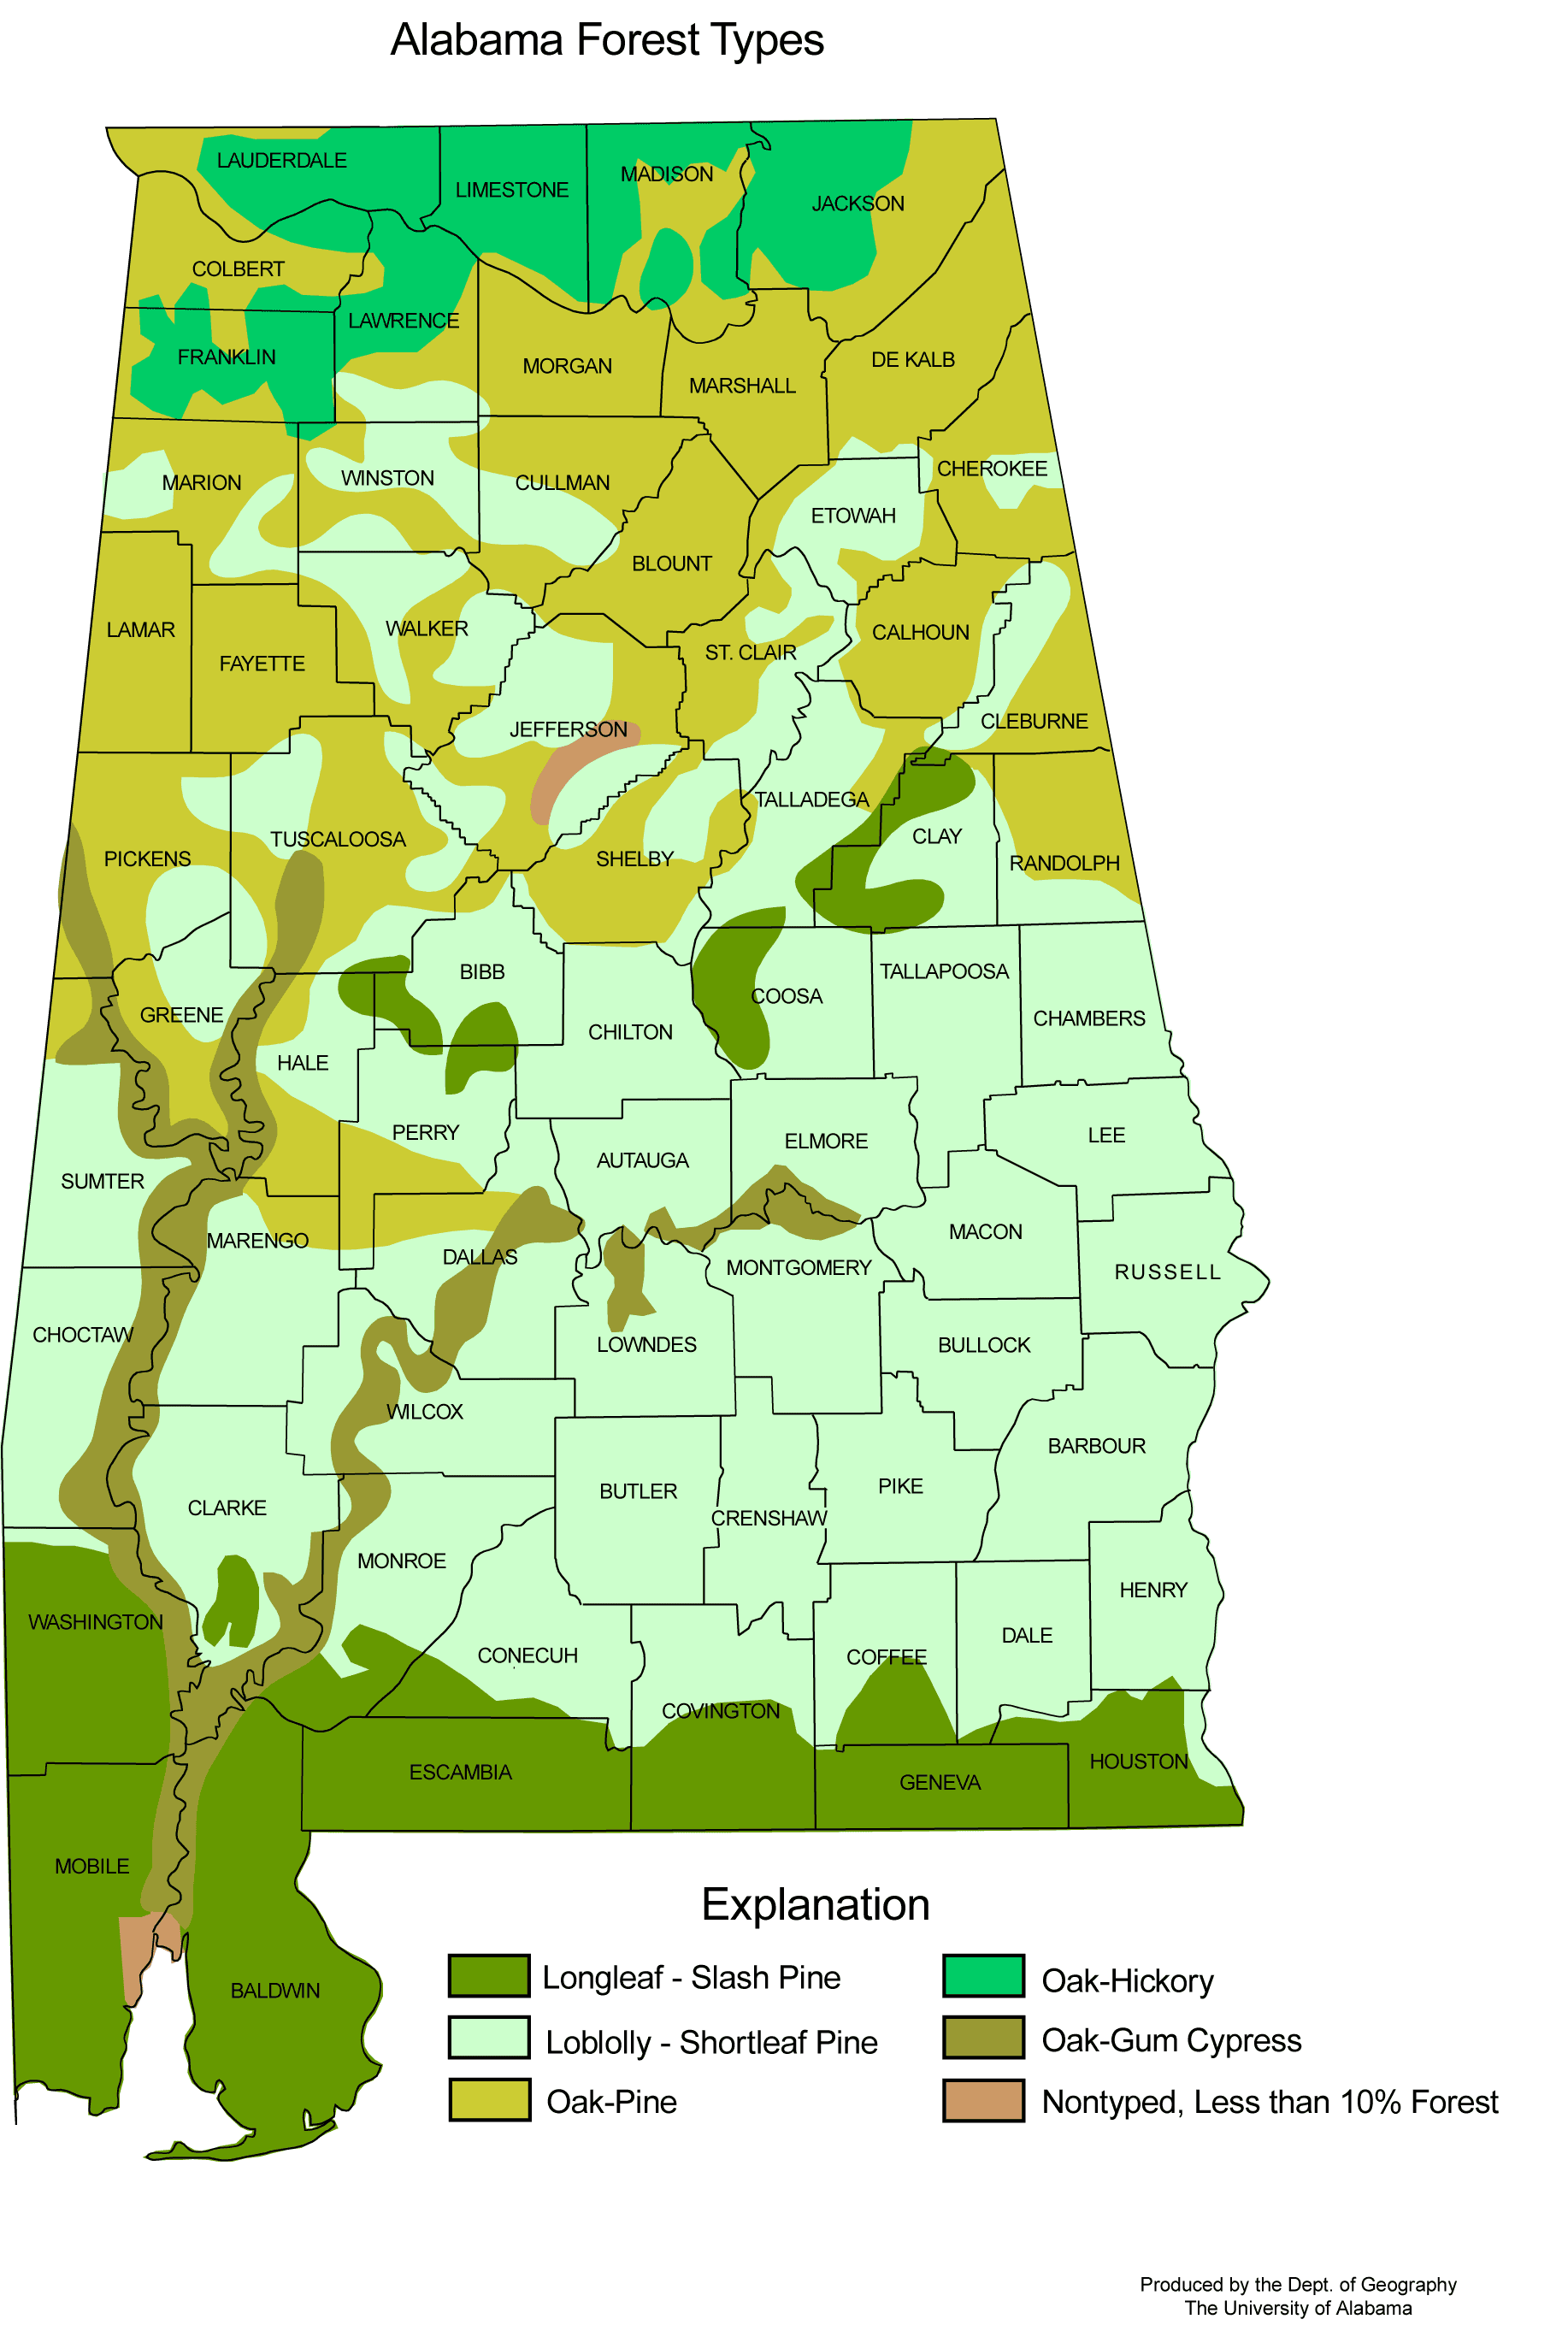 Alabama Forest Types large map